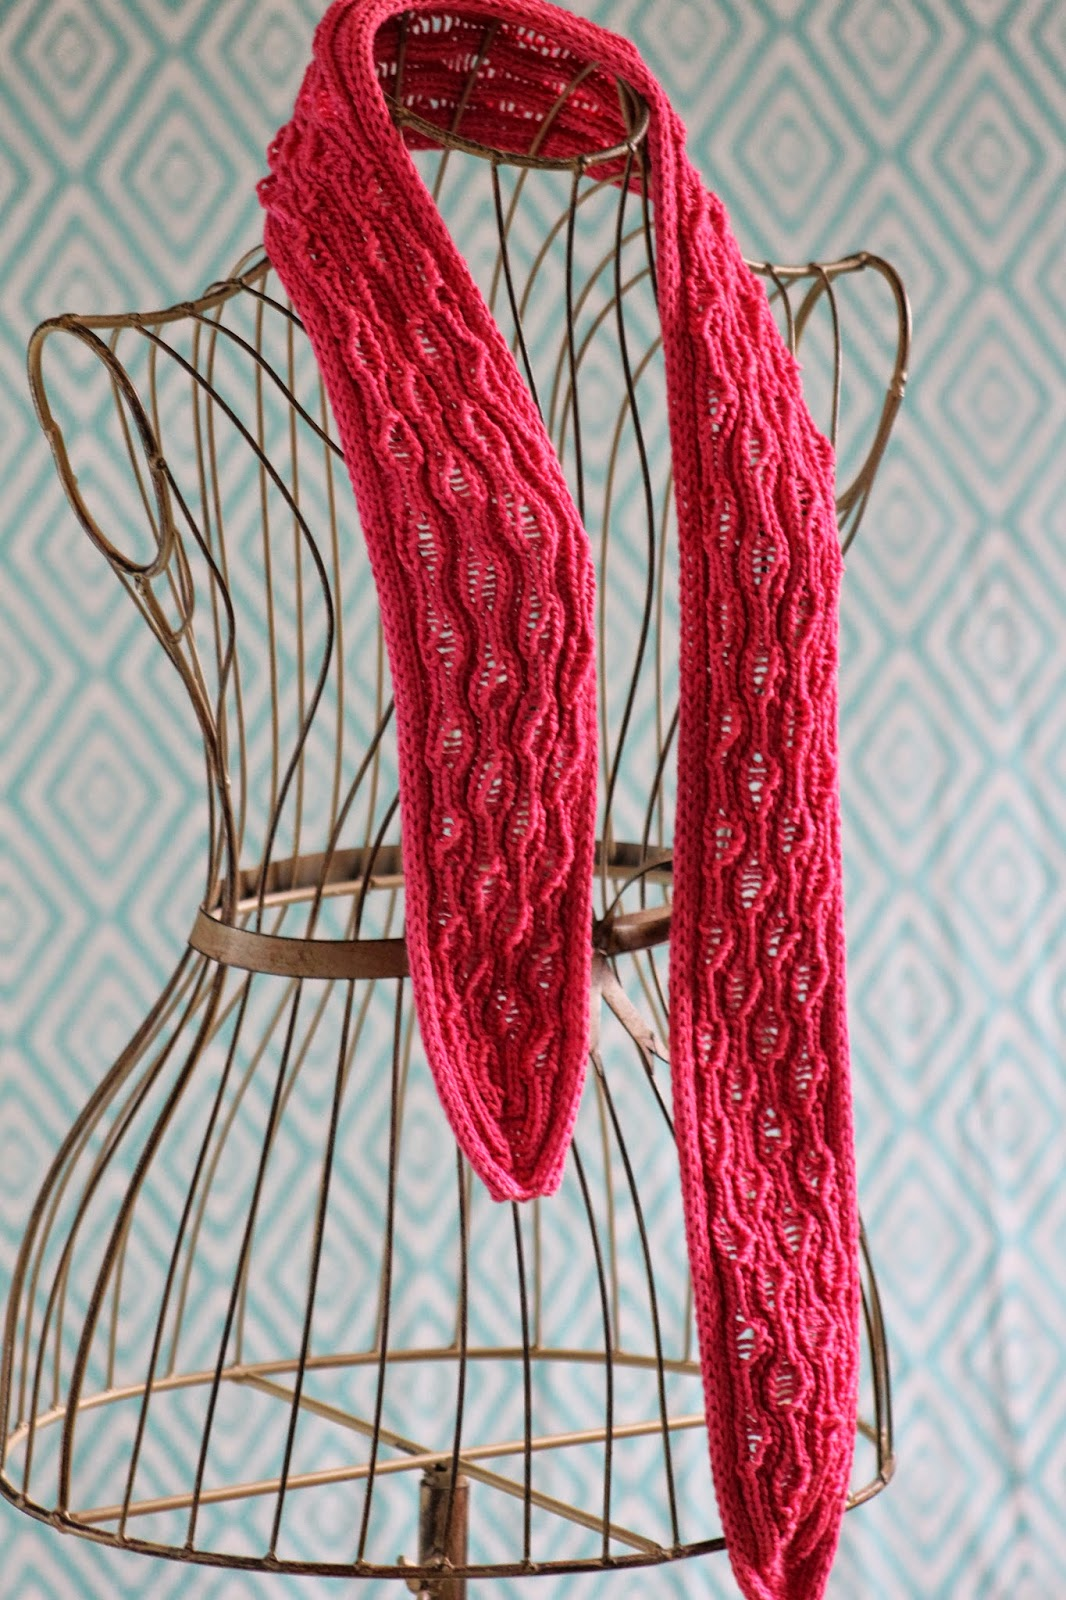 Drop Stitch Scarf Knit Pattern : Balls to the Walls Knits: Vertical Drop-Stitch Scarf